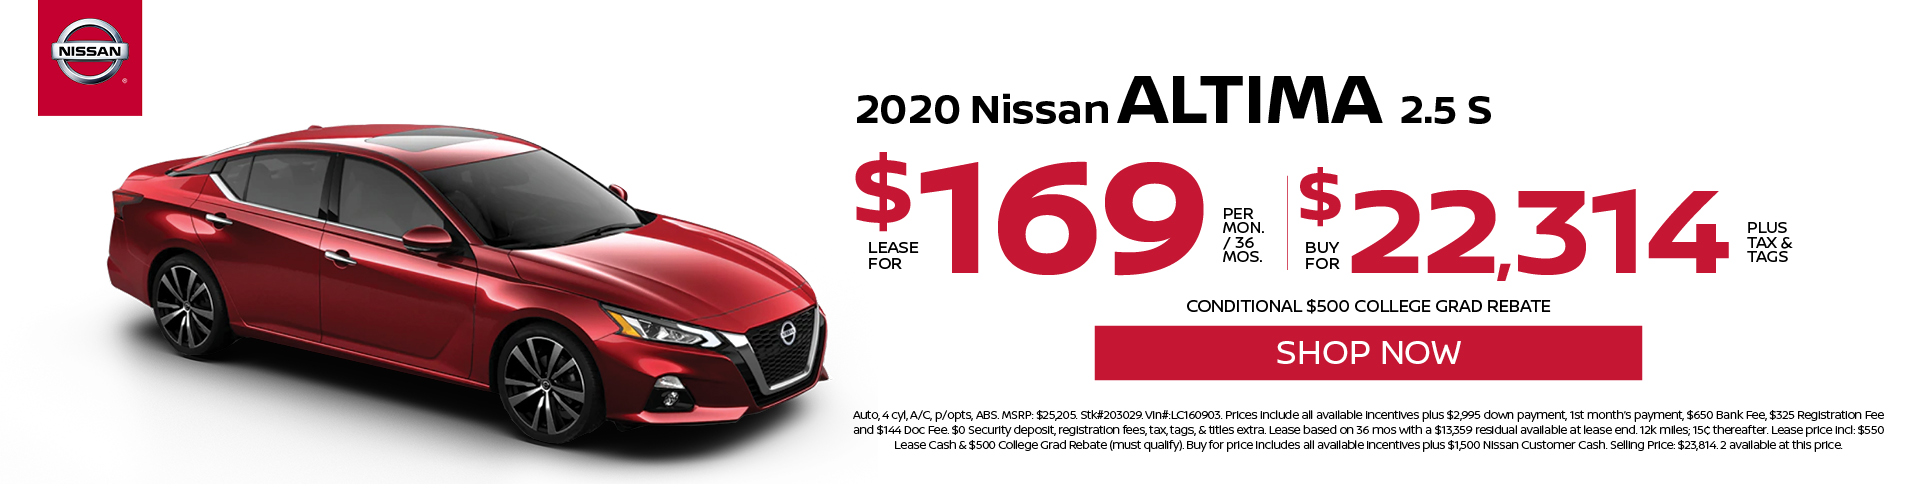 New Used Nissan Dealer Serving Fairless Hills Levittown